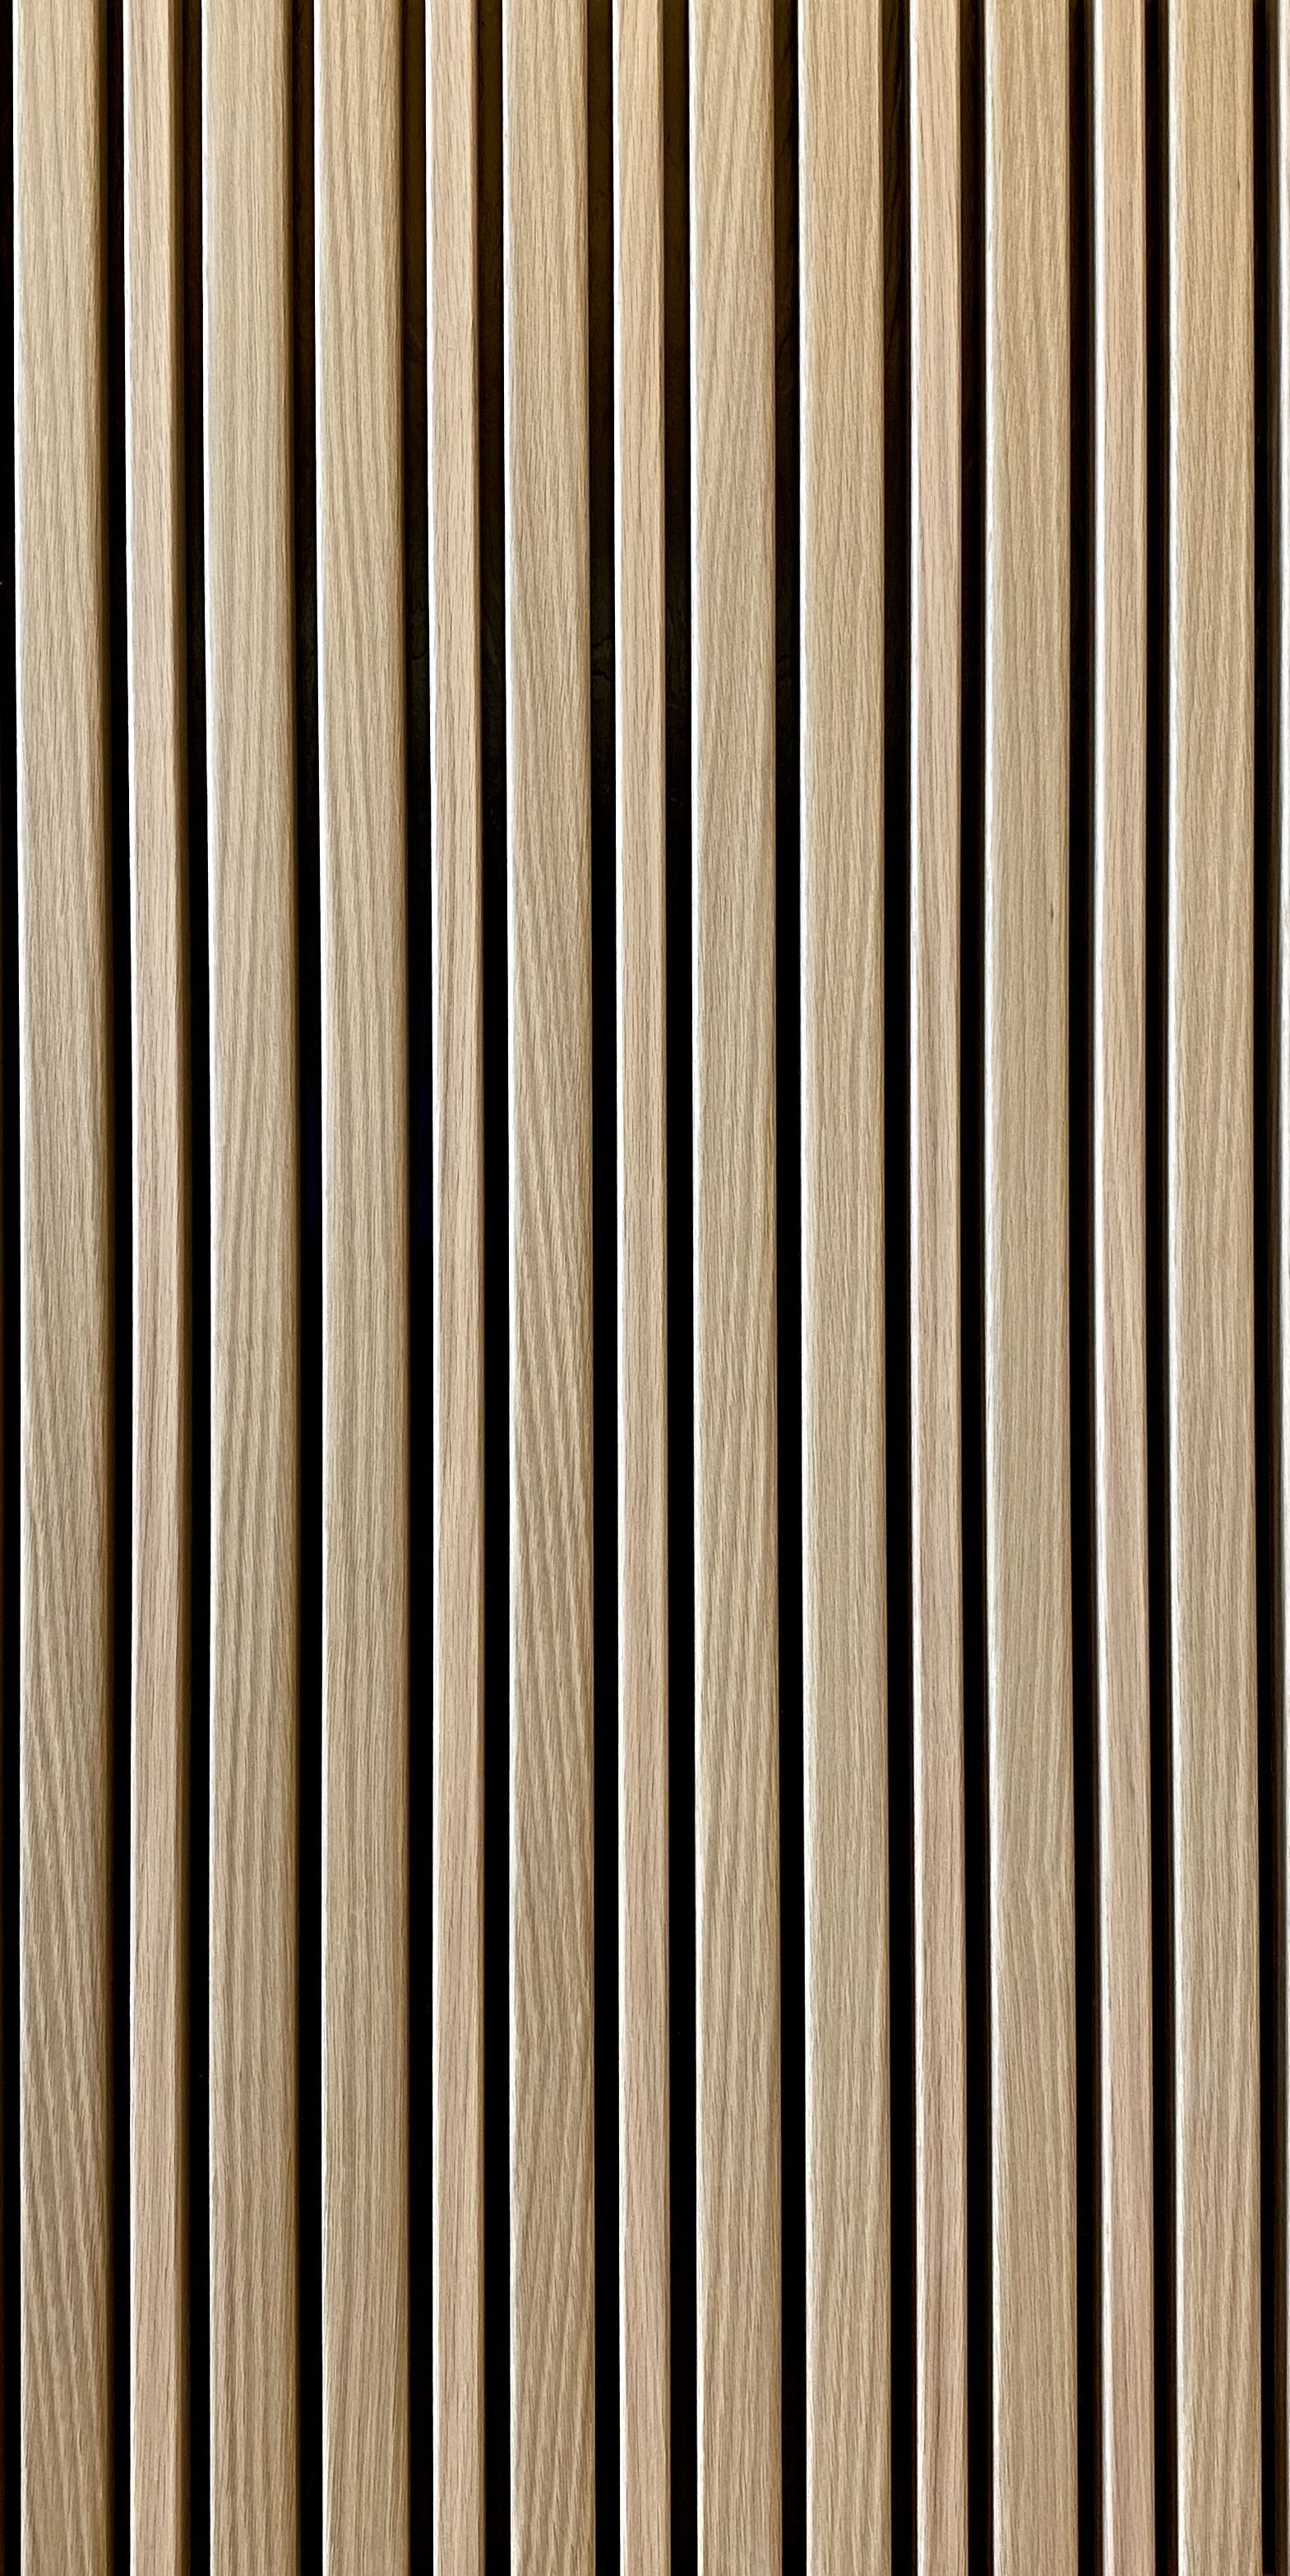 Nouvelles Dimensions Rib Etroites Pour Des Installations Creatives Wooden Cladding Wood Wall Texture Hidden Doors In Walls